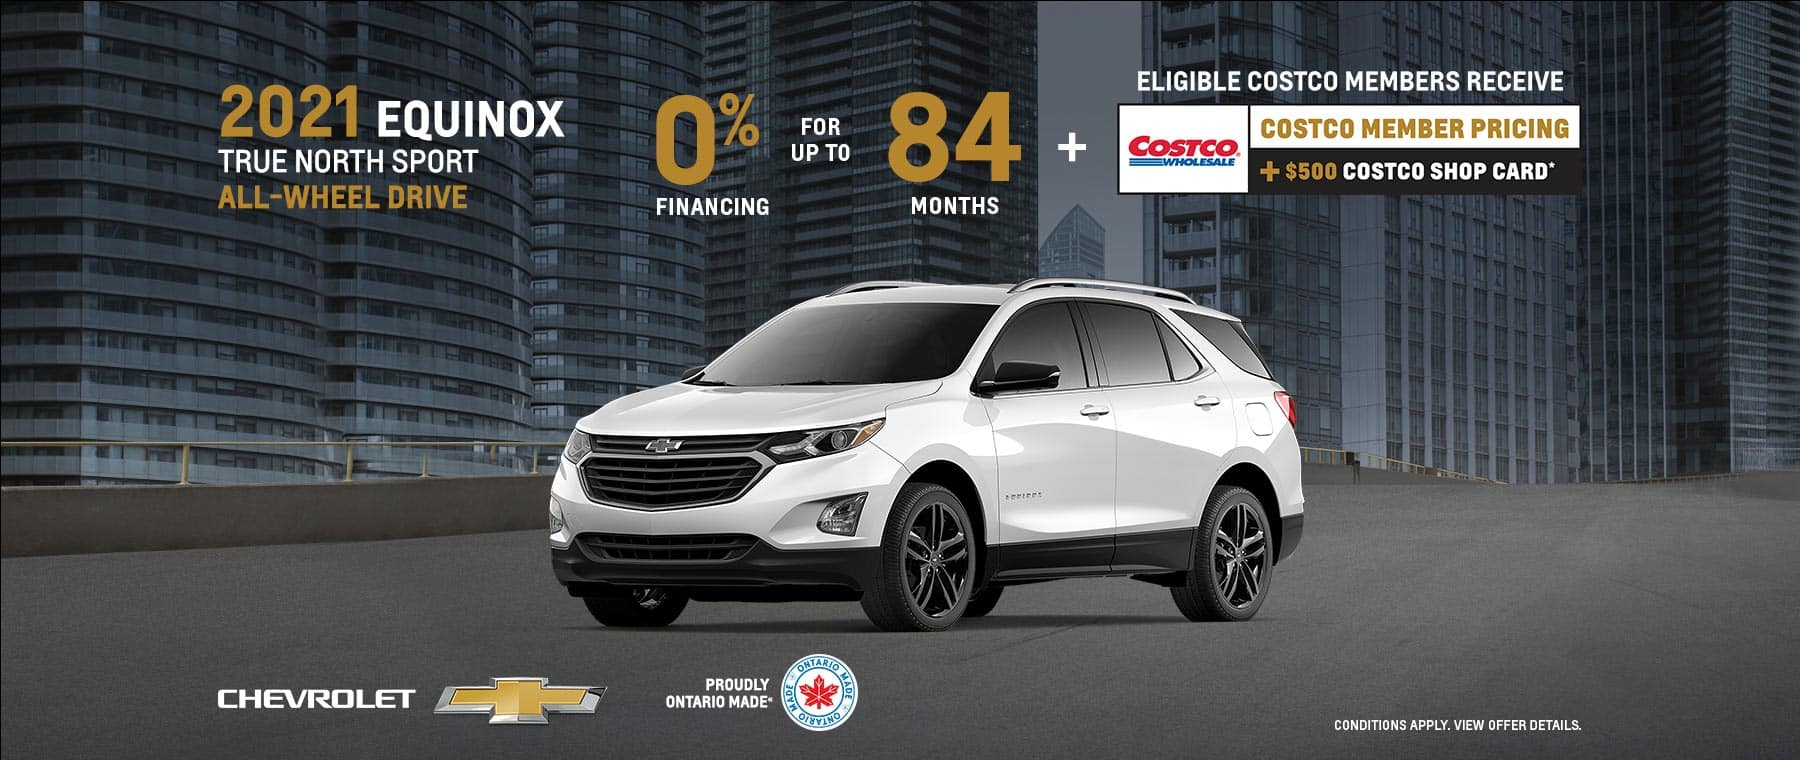 2021_APR_CNT_Chevy_T3_EN_1800x760_Equinox_Costco